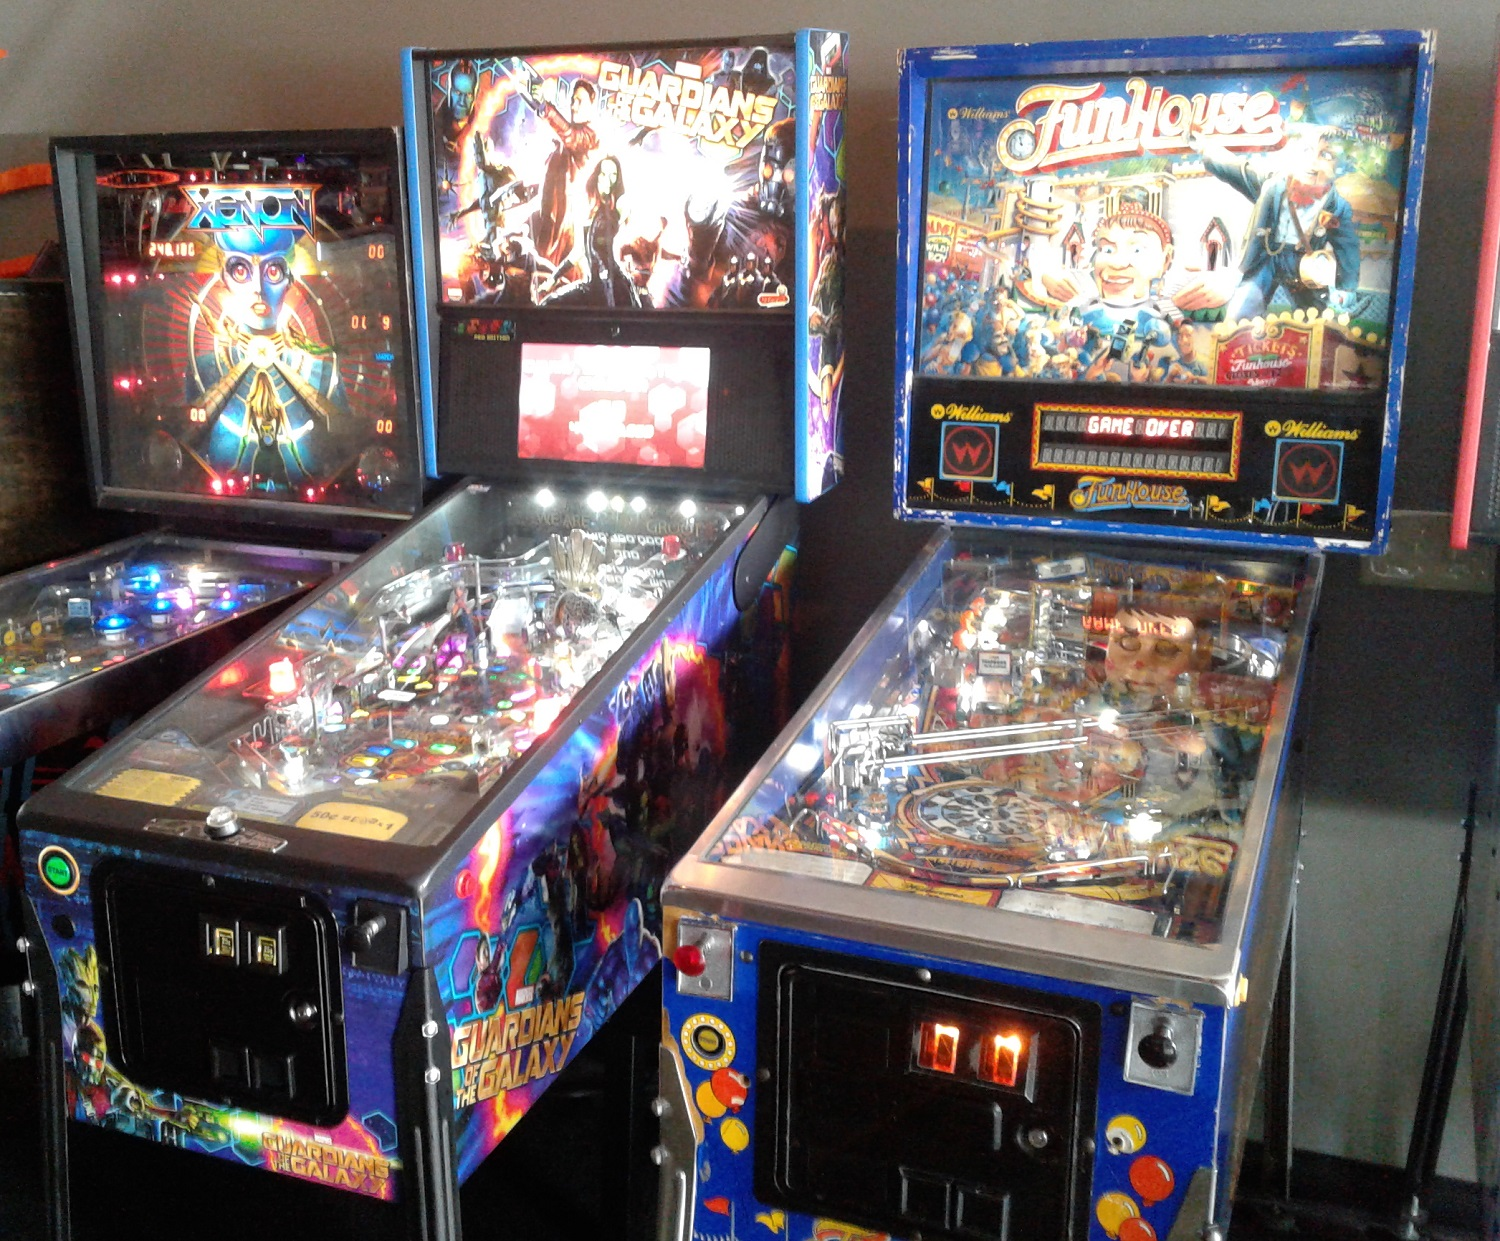 Sensational Four Tacoma Gaming Hotspots That Are Not Just For Kids Interior Design Ideas Gentotryabchikinfo